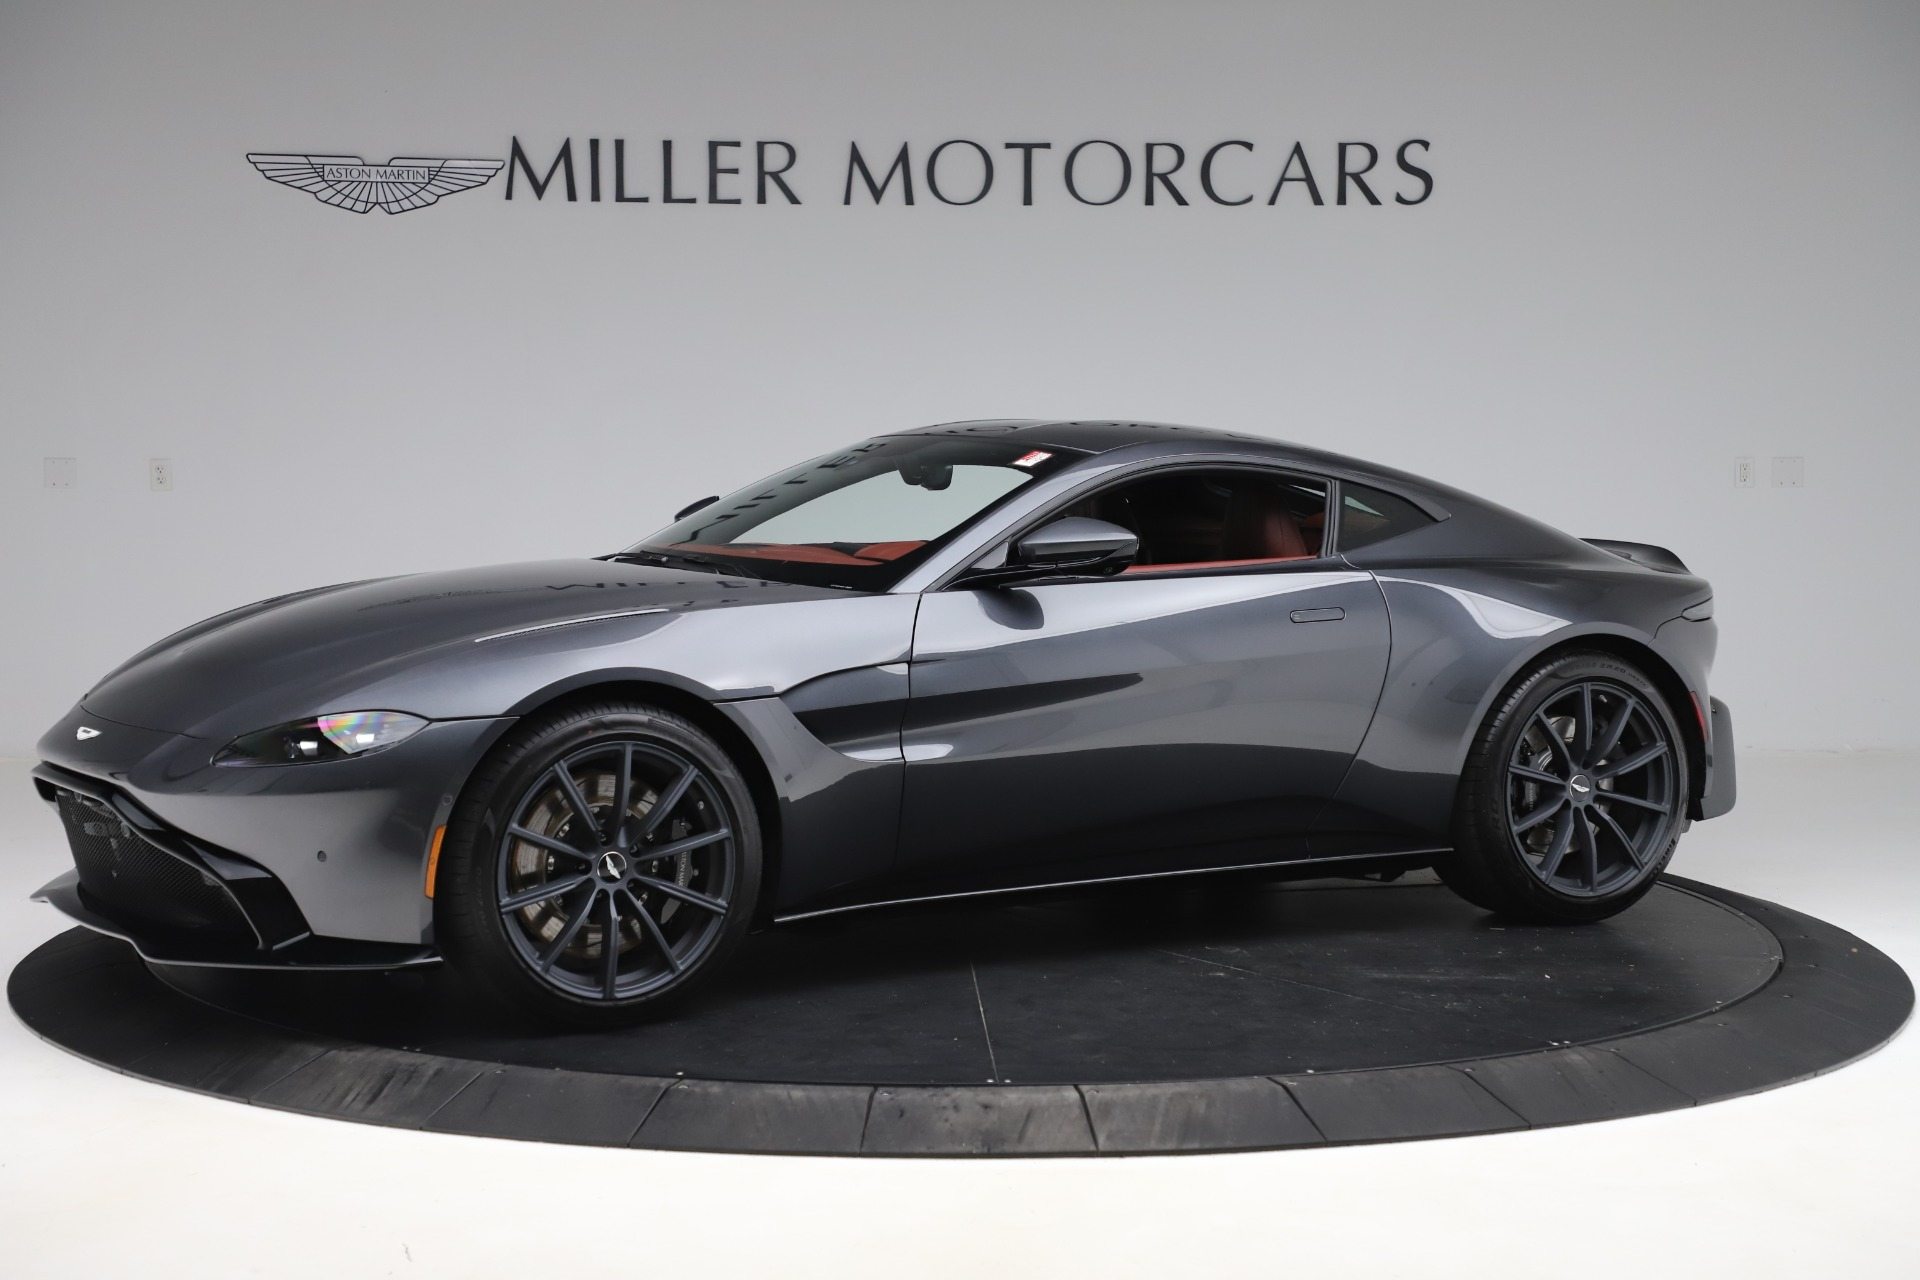 Pre Owned 2020 Aston Martin Vantage For Sale 153 900 Aston Martin Of Greenwich Stock 4736a